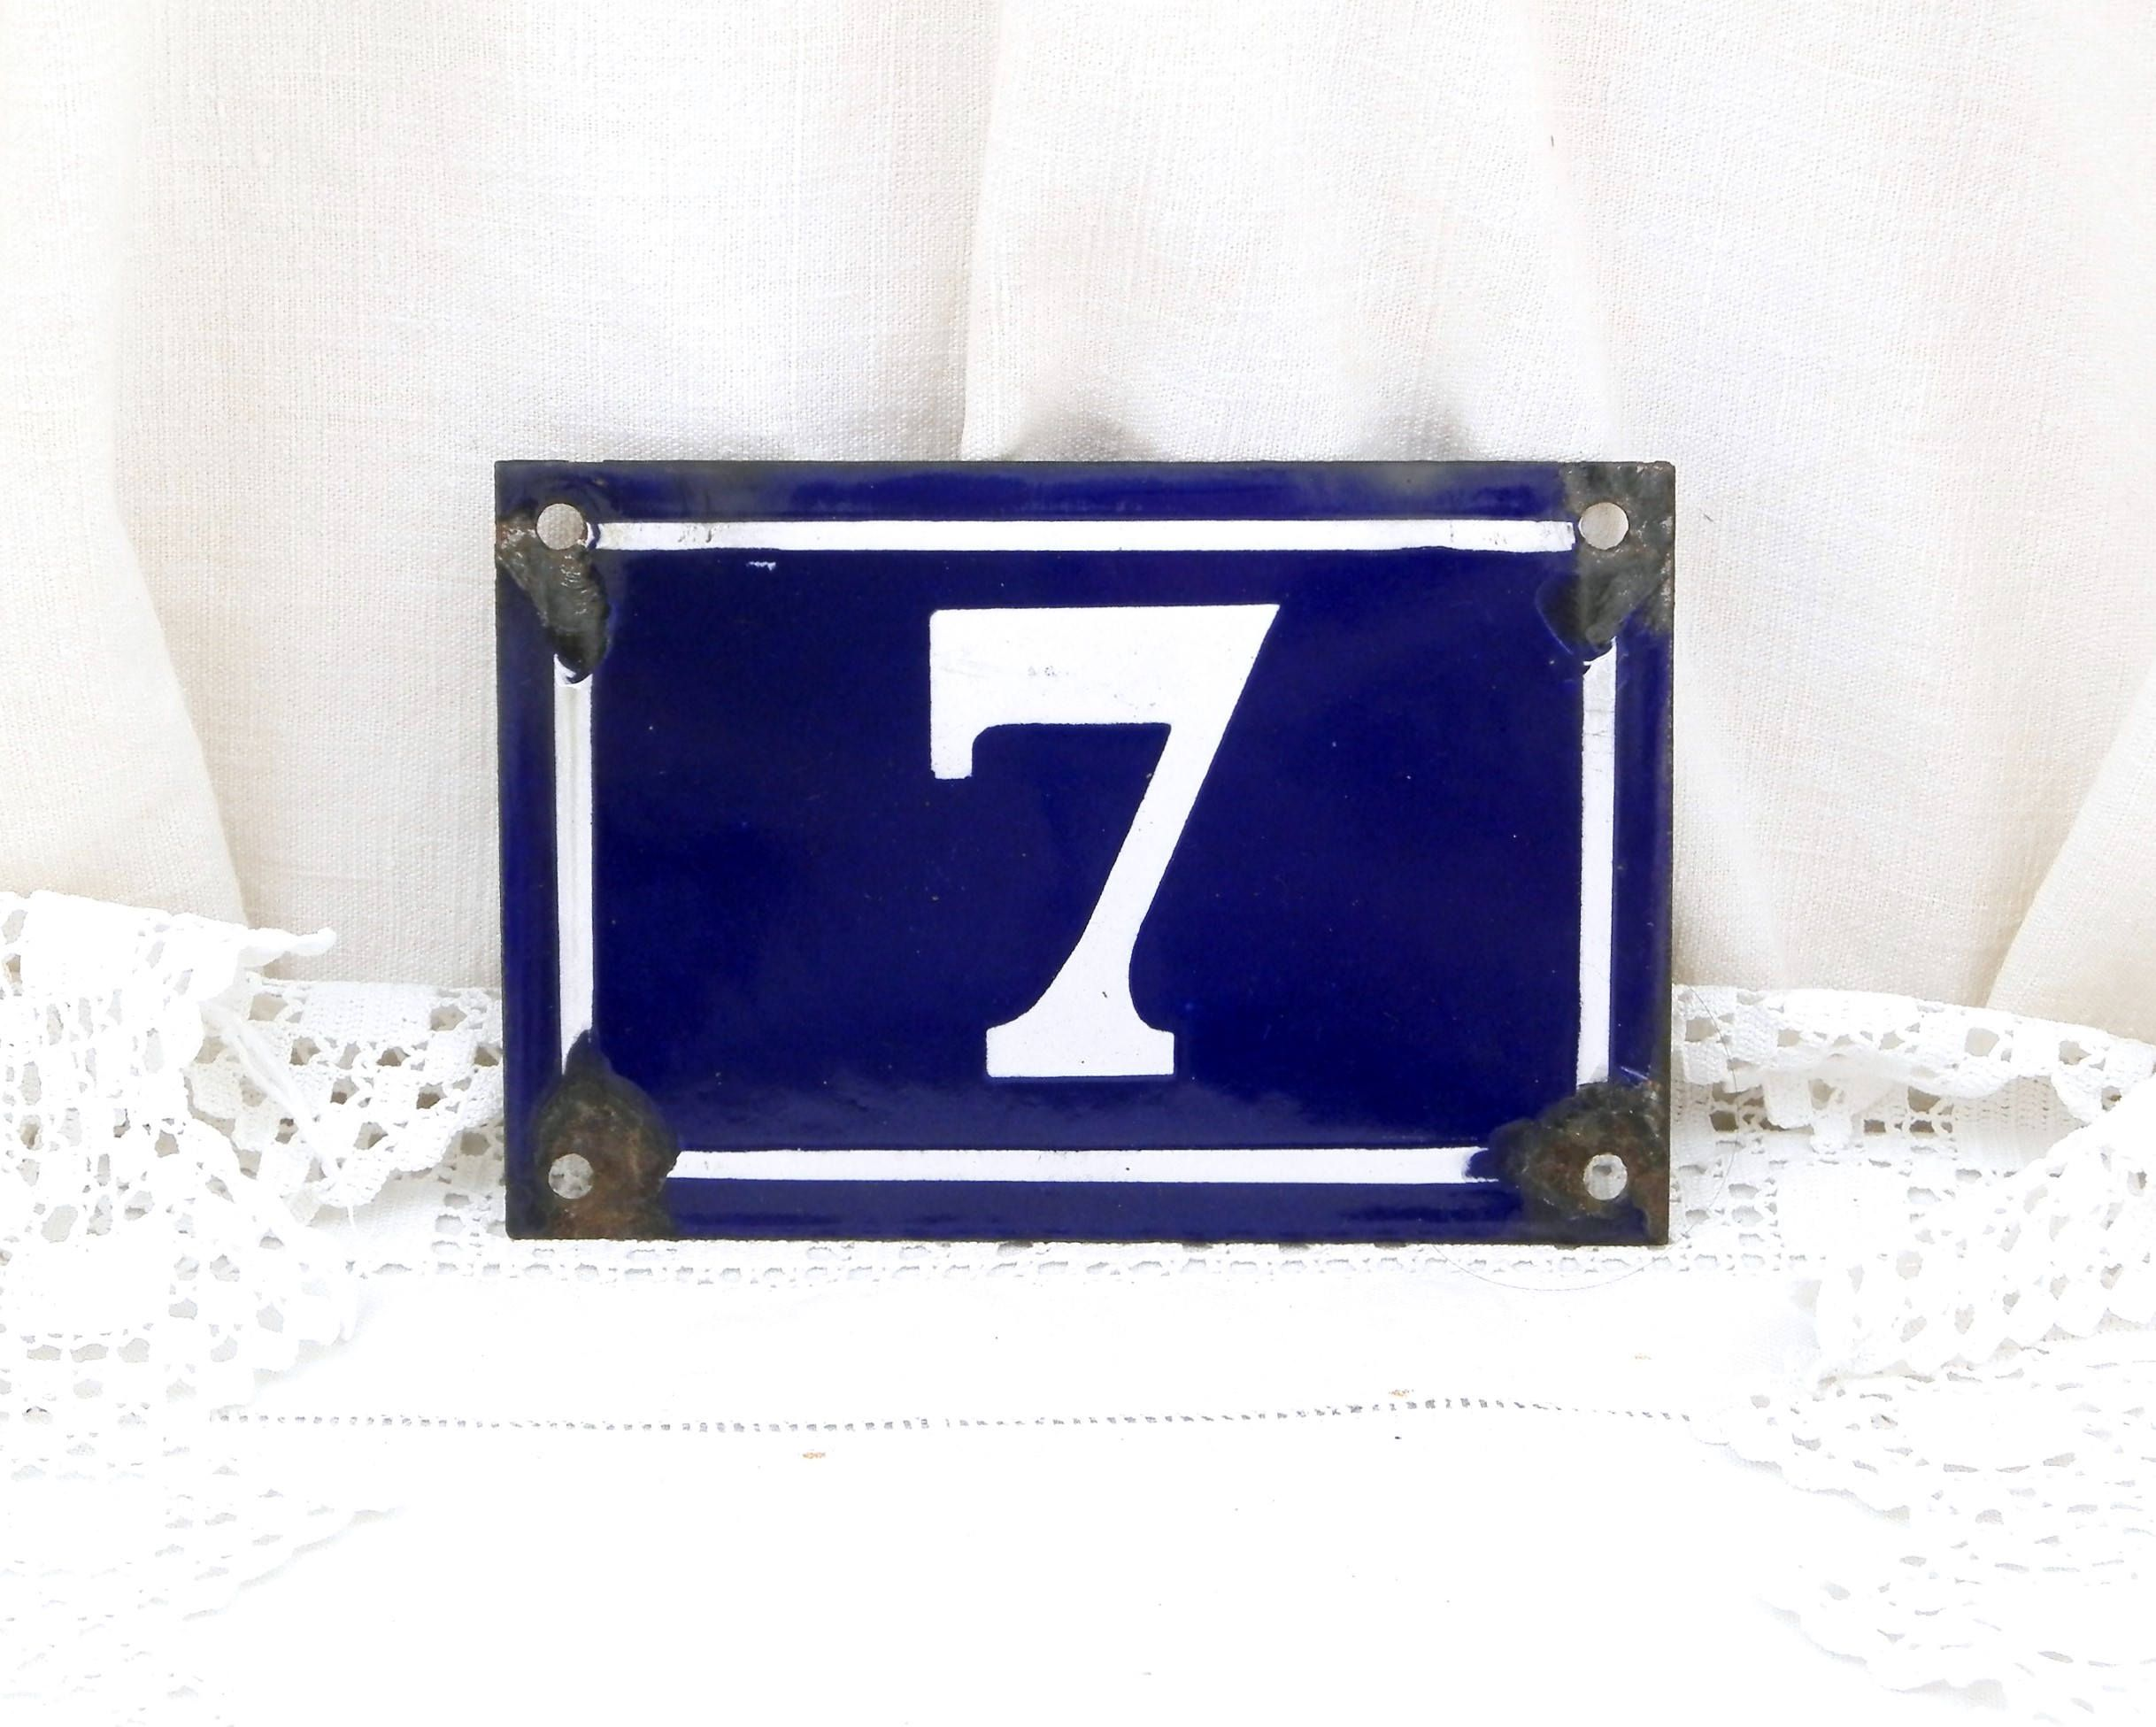 Antique Porcelain House Number Blue And White Traditional French Enamel House Number Plate Number 7 Vintage Retro French Signs Street By Vintagedecorfranc